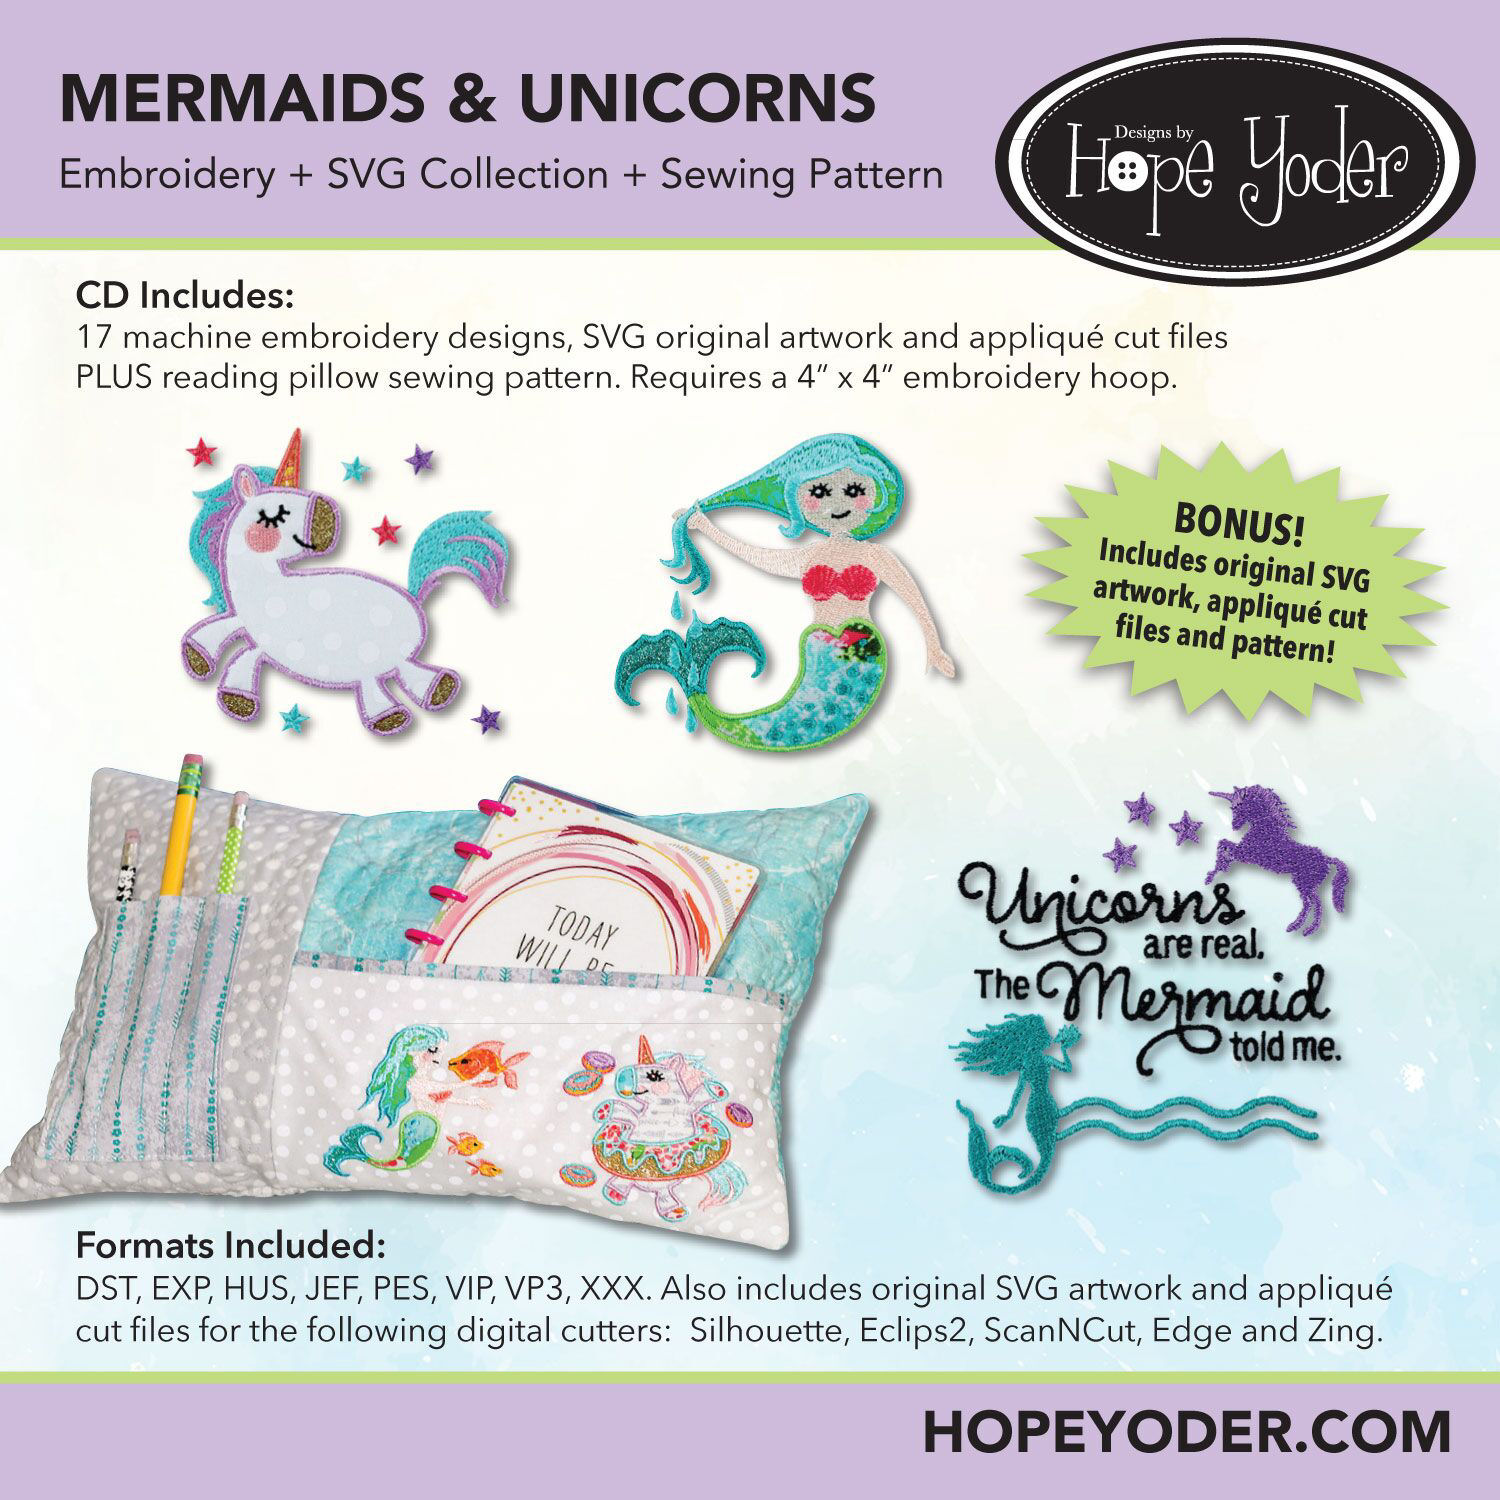 Mermaids & Unicorns Embroidery CD with SVG Files